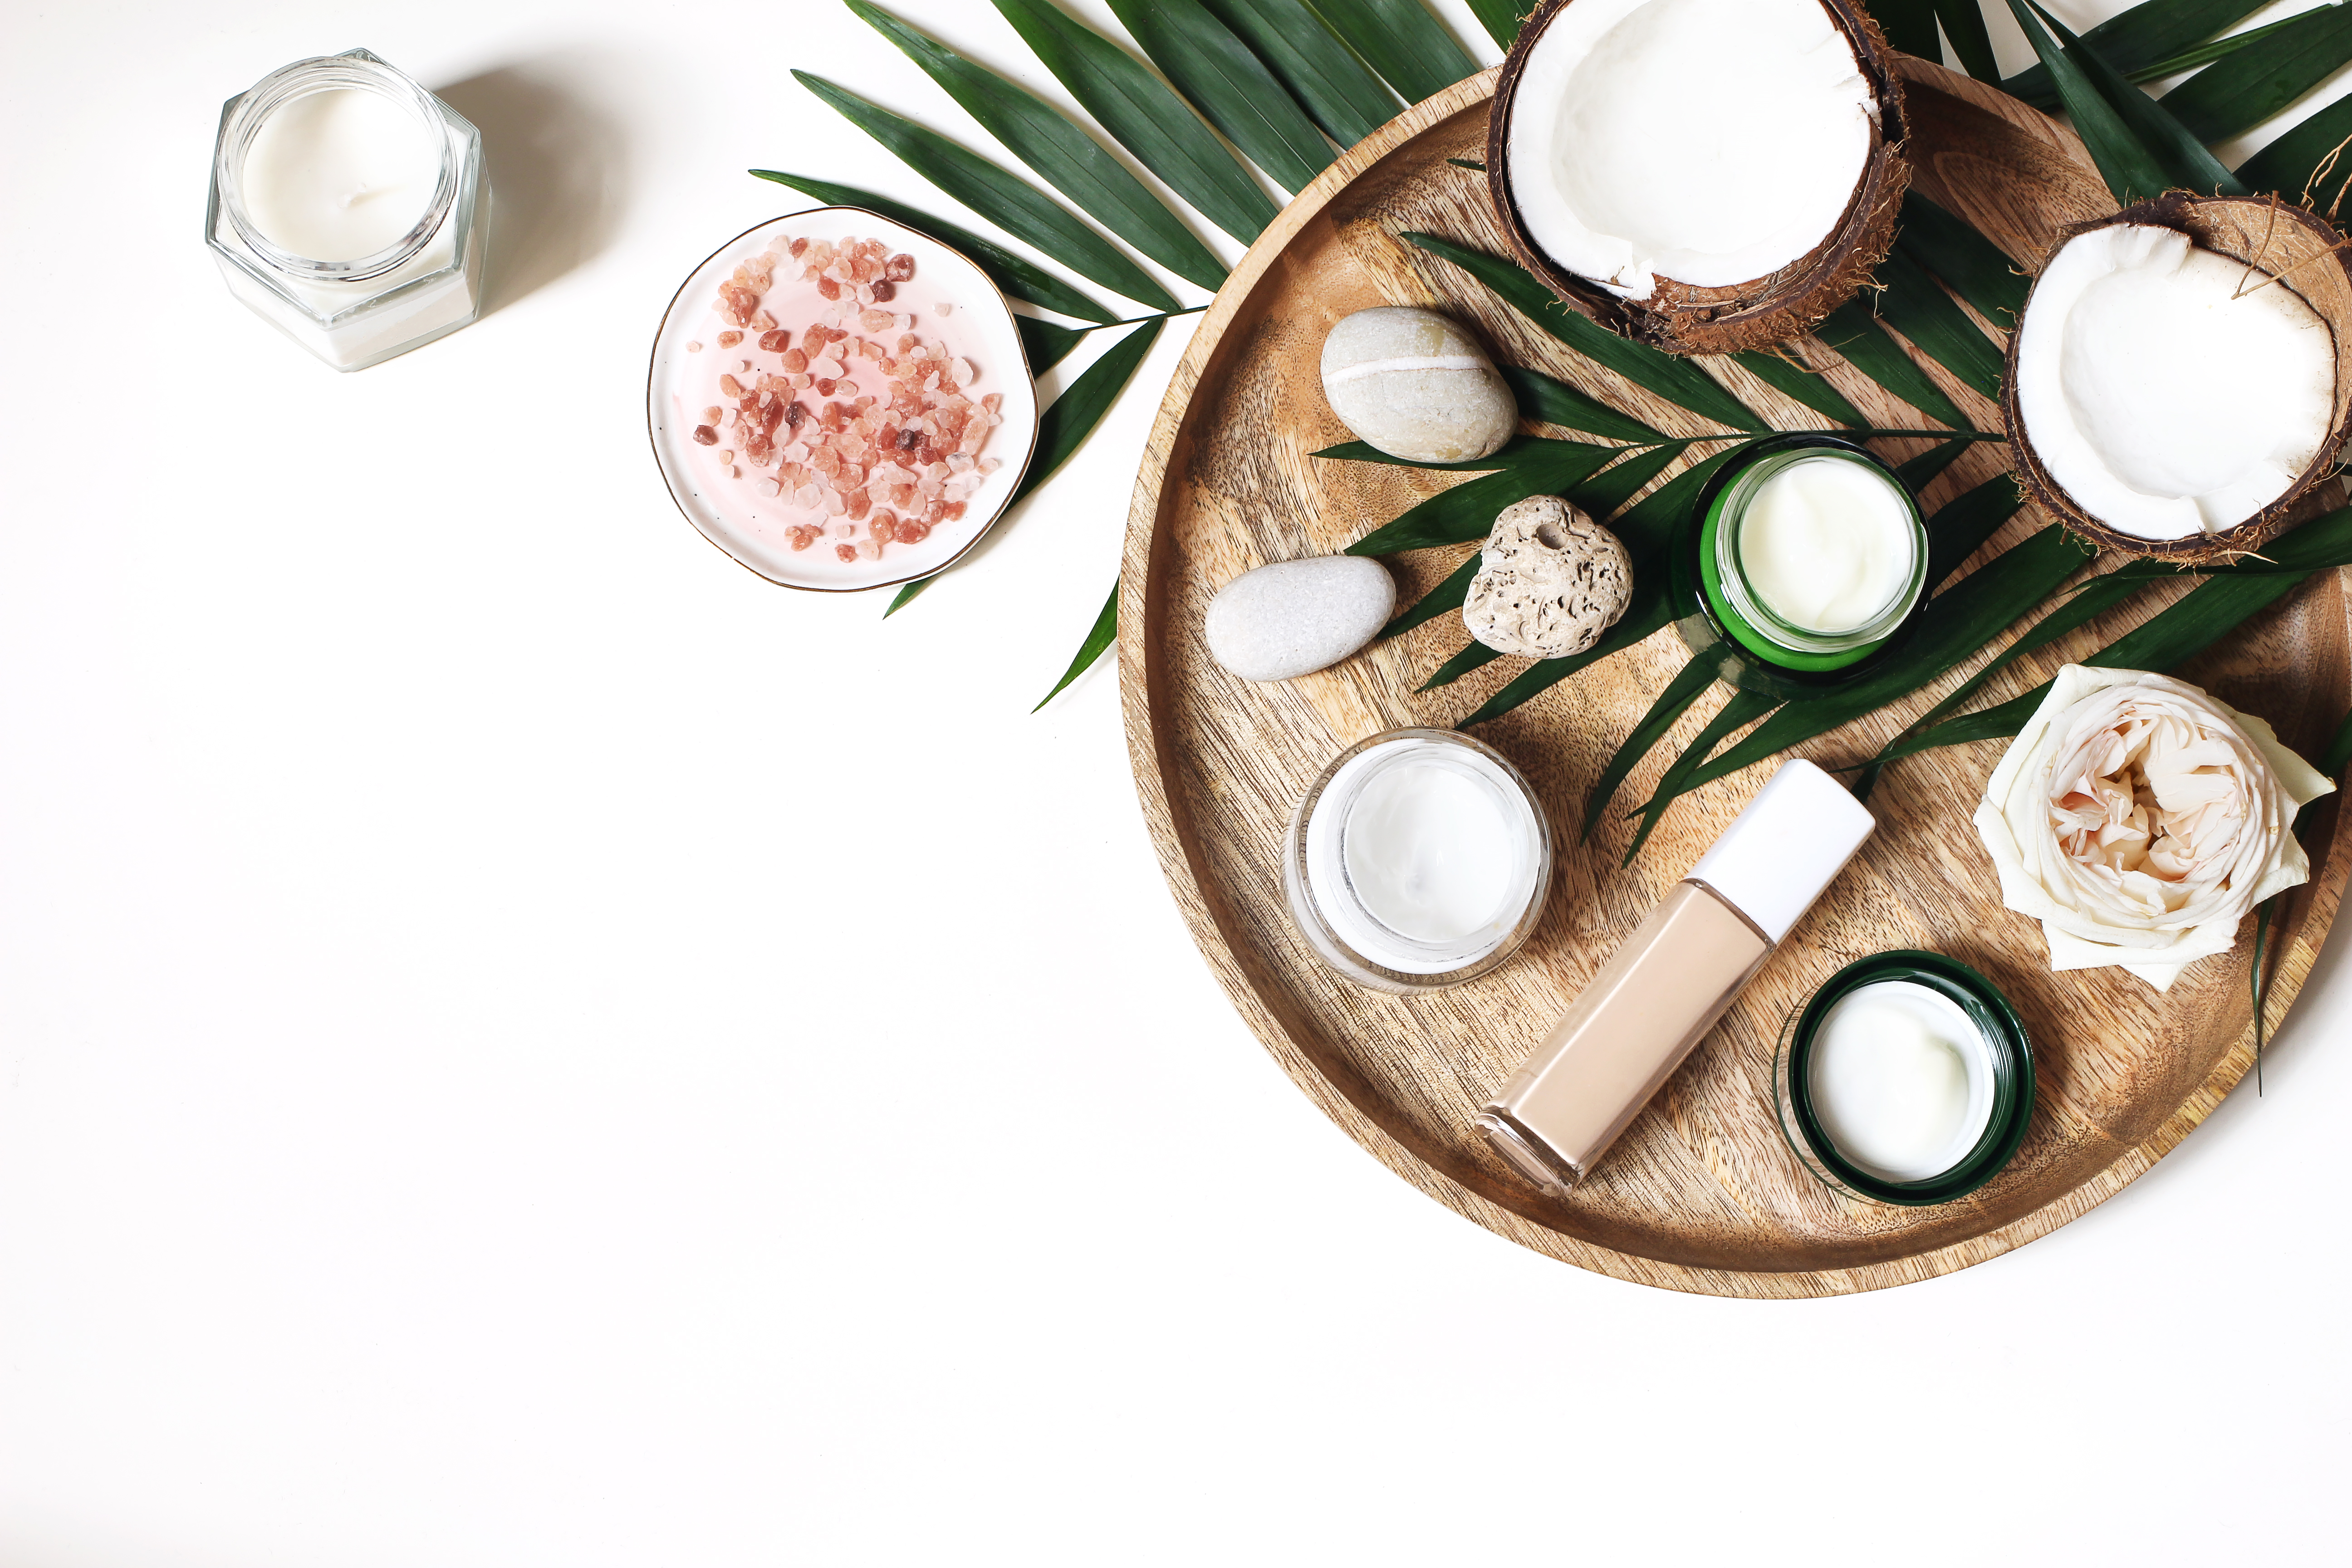 Styled beauty composition. Skin creams, makeup bottle, rose and pebble stones on wooden tray. Coconuts, tropical palm leaves decoration. Cosmetics, spa concept. Empty space, flat lay, top view.